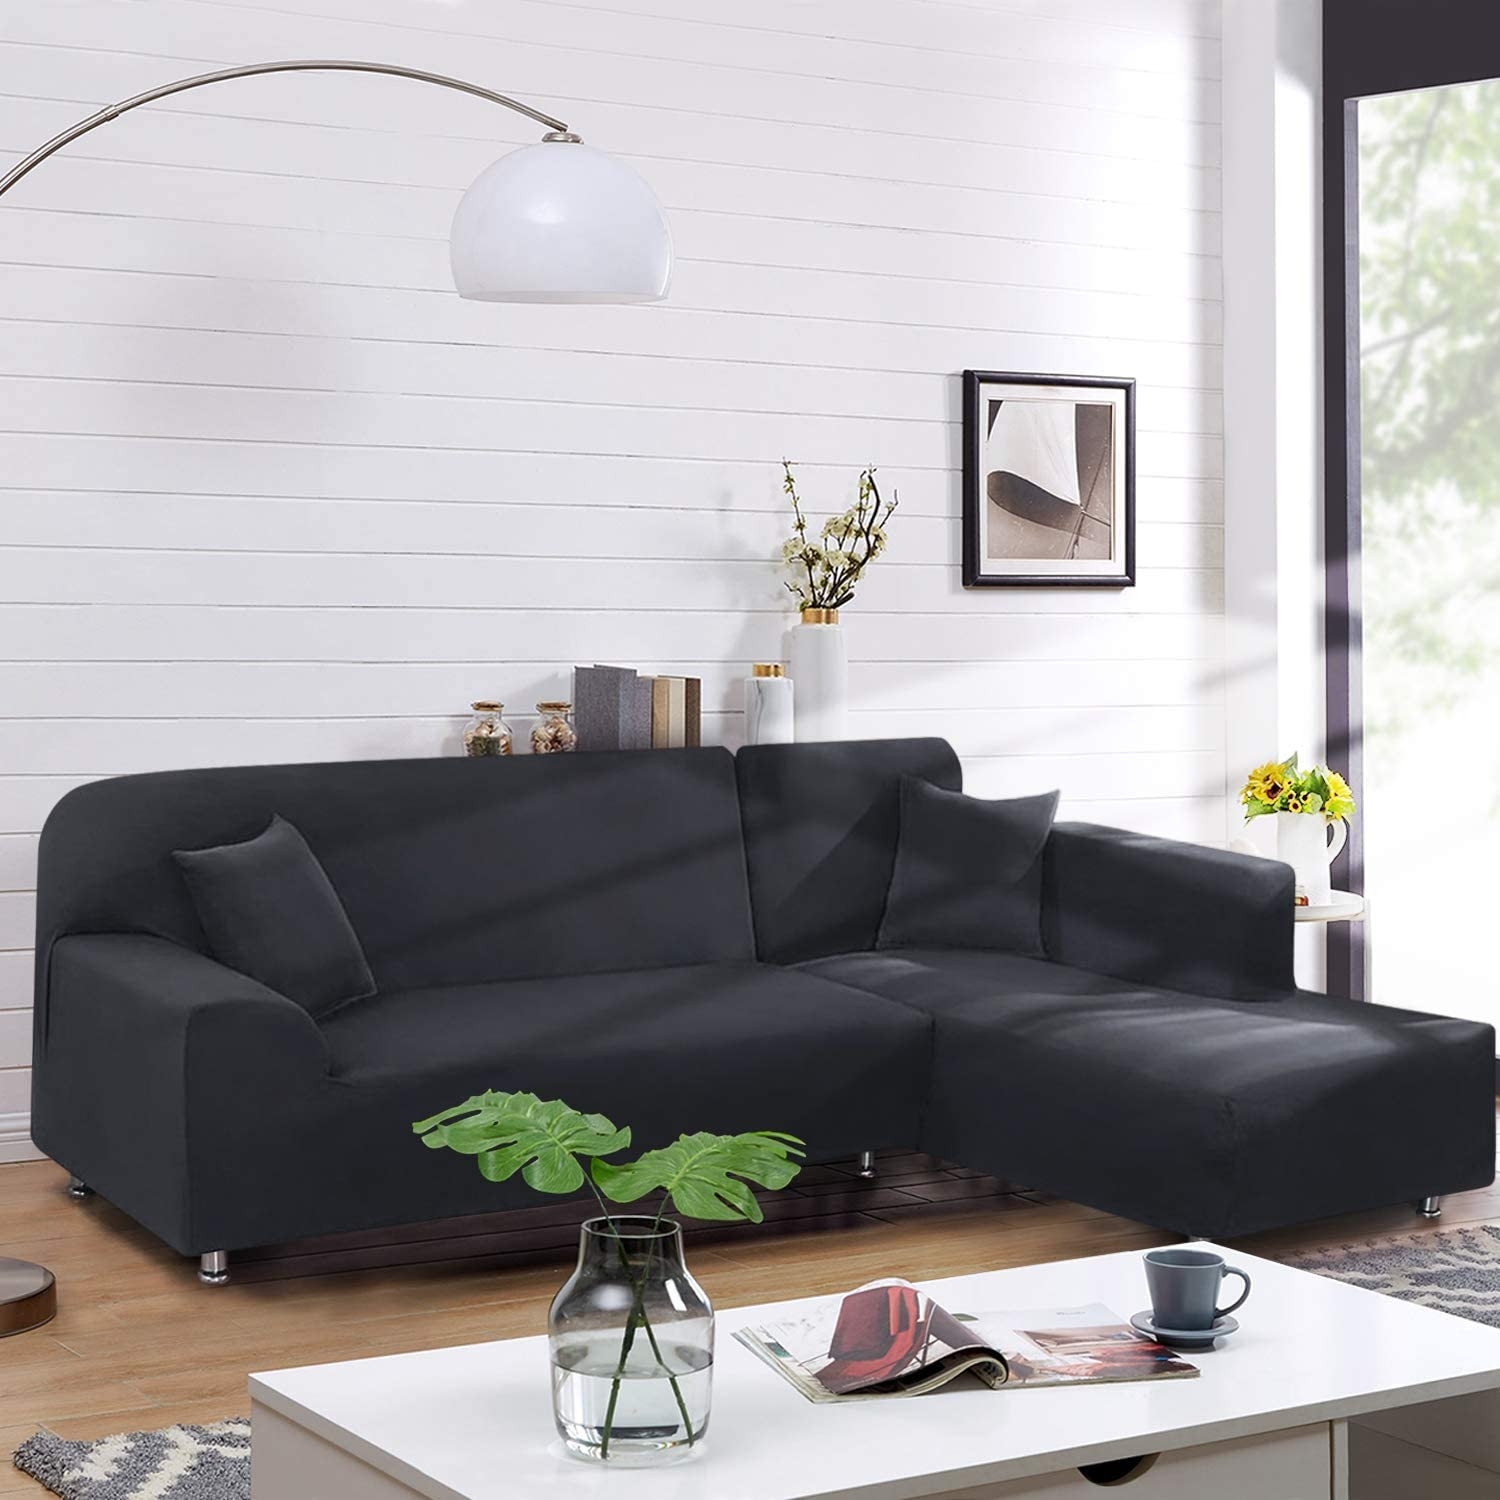 TAOCOCO Sectional Couch Covers 2pcs L-Shaped Sofa Covers Softness Furniture Slipcovers with 2pcs Pillowcases L-Type Polyester Fabric Stretch Sofa Covers 3 Seats +3 Seats (Lead Grey): Kitchen & Dining